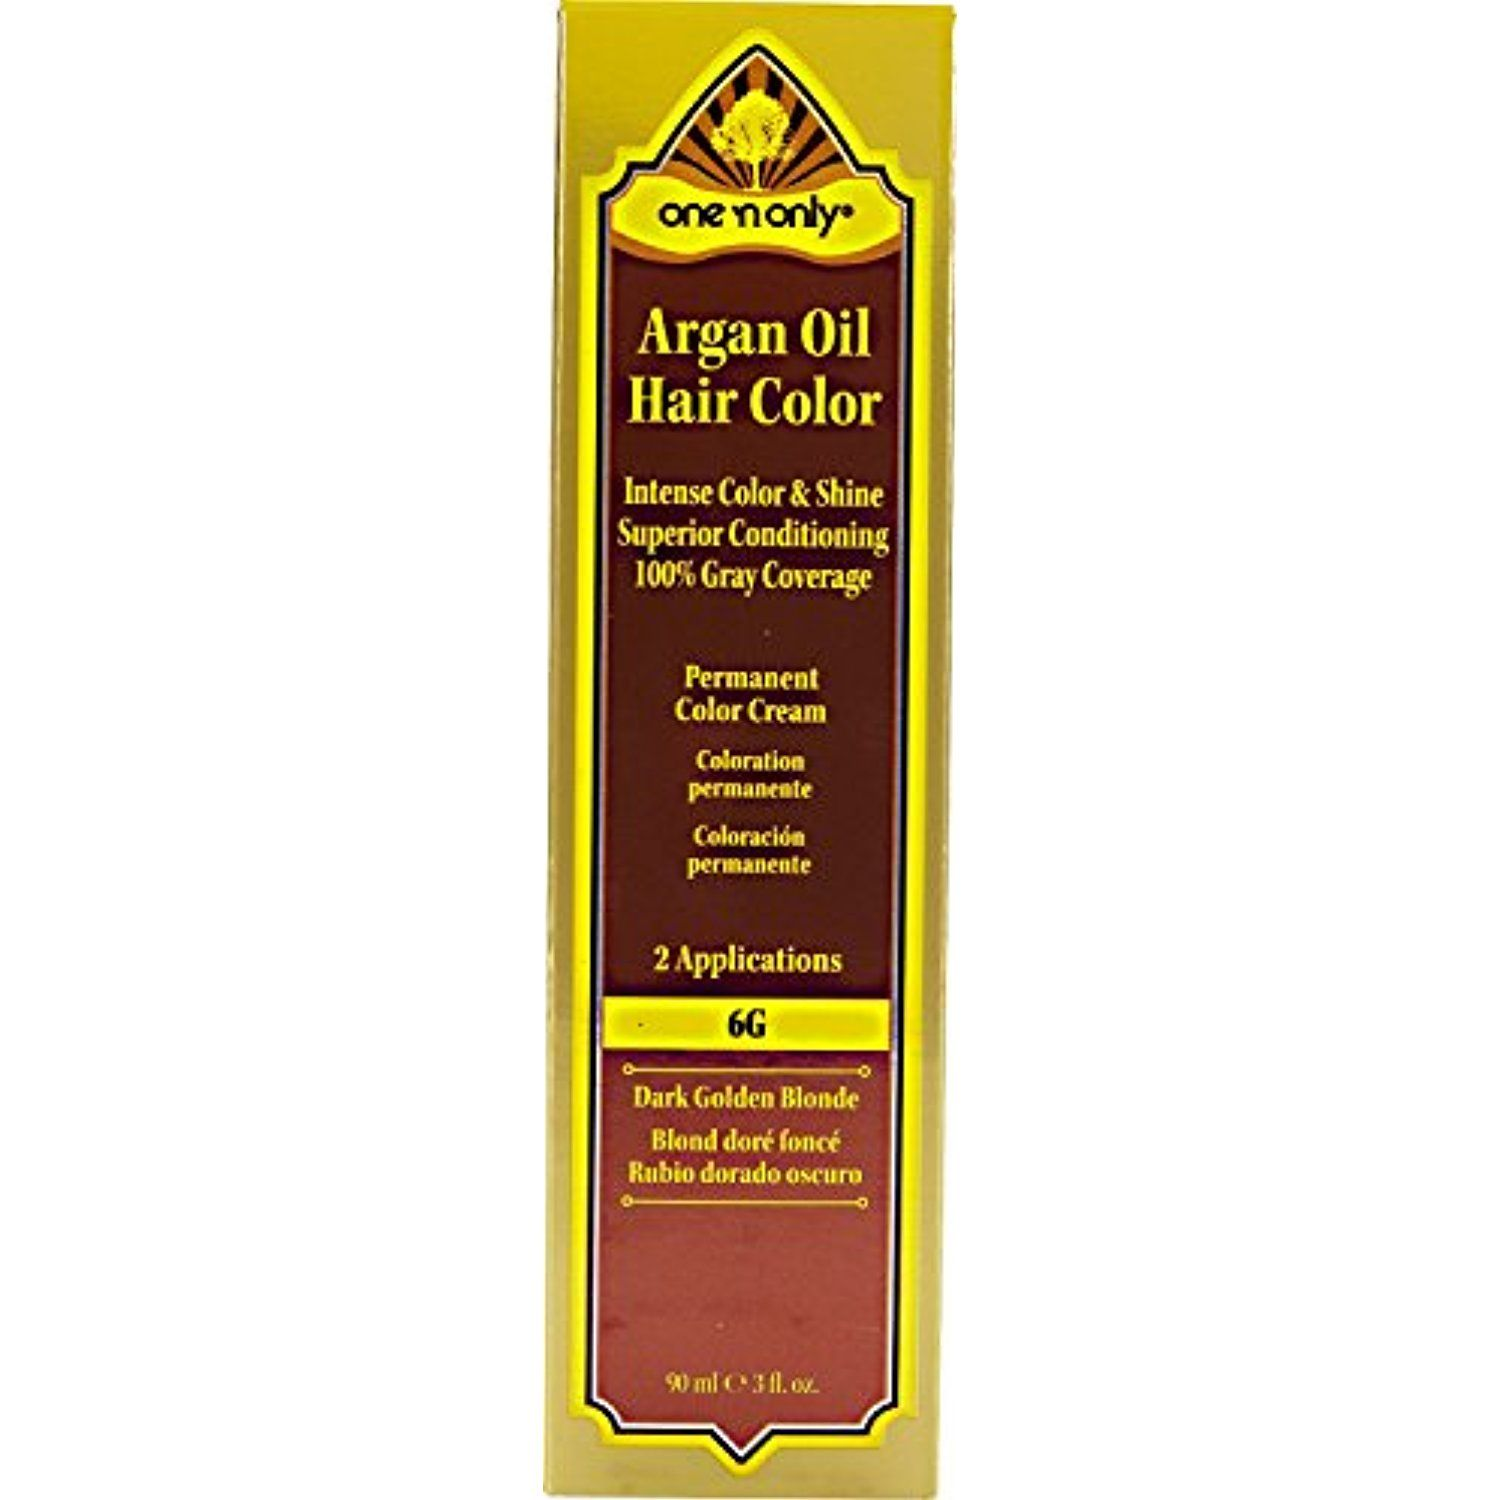 One N Only Argan Oil Hair Color 6g Dark Golden Blonde Read More